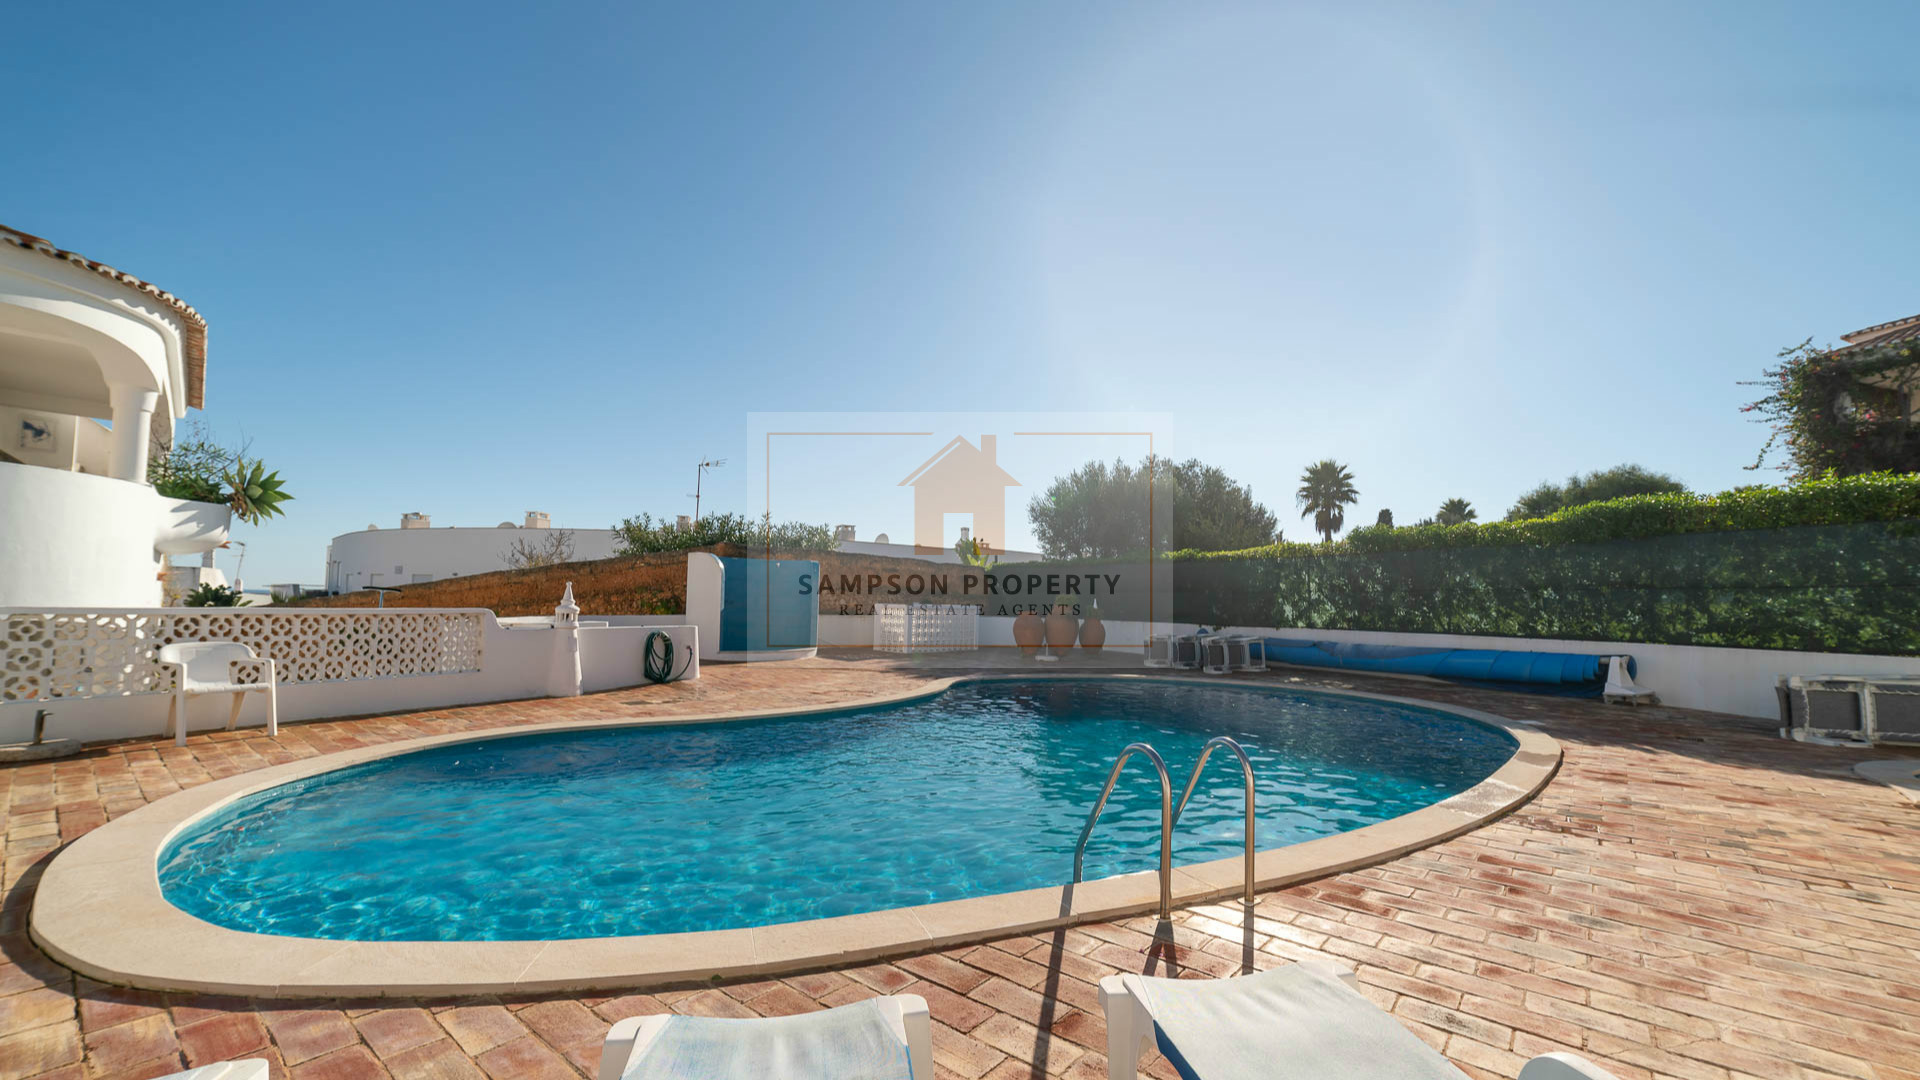 Rental investment, 1 bedroom apartment for sale in Carvoeiro